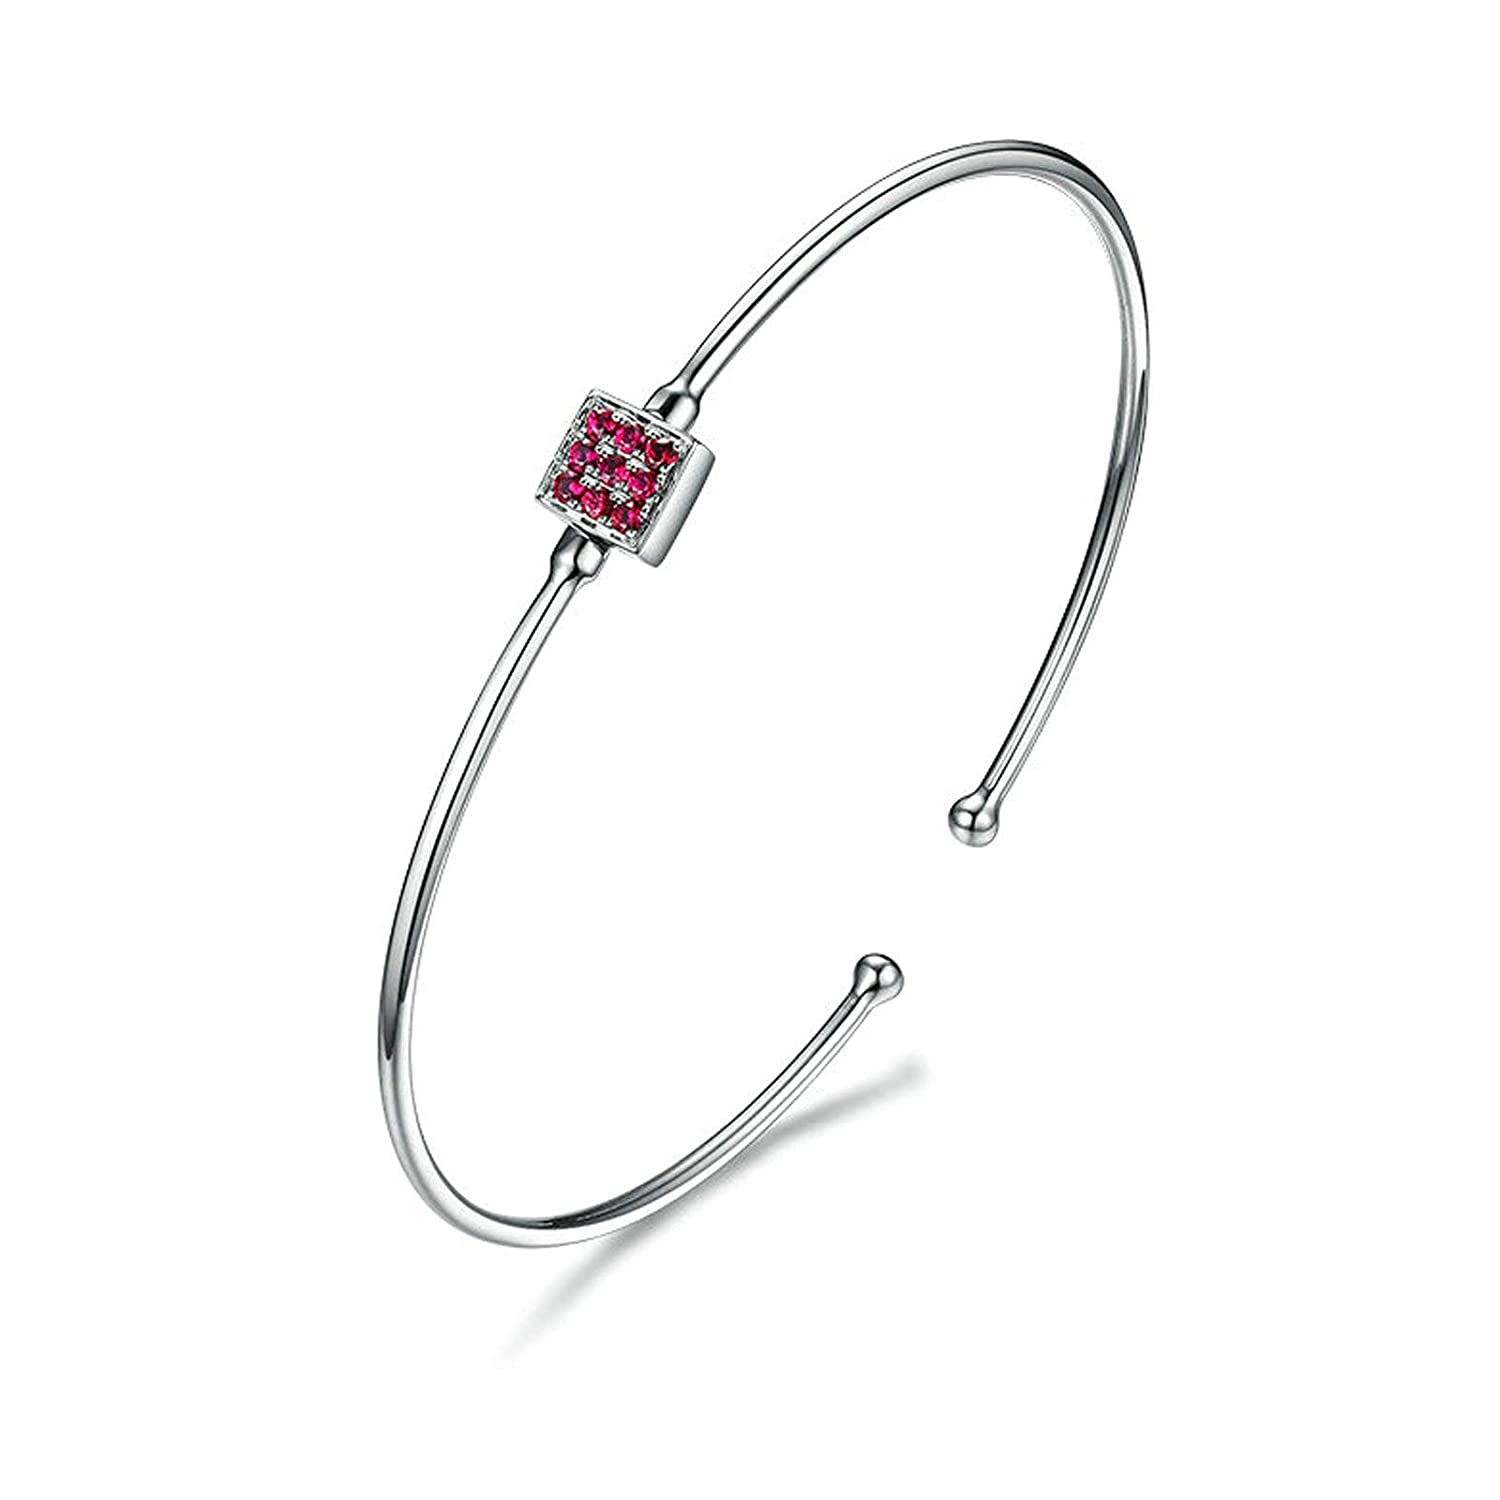 Aooaz Jewelry 18K White Gold Bracelets For Womens Rund Circle Party Holiday Link Bracelets